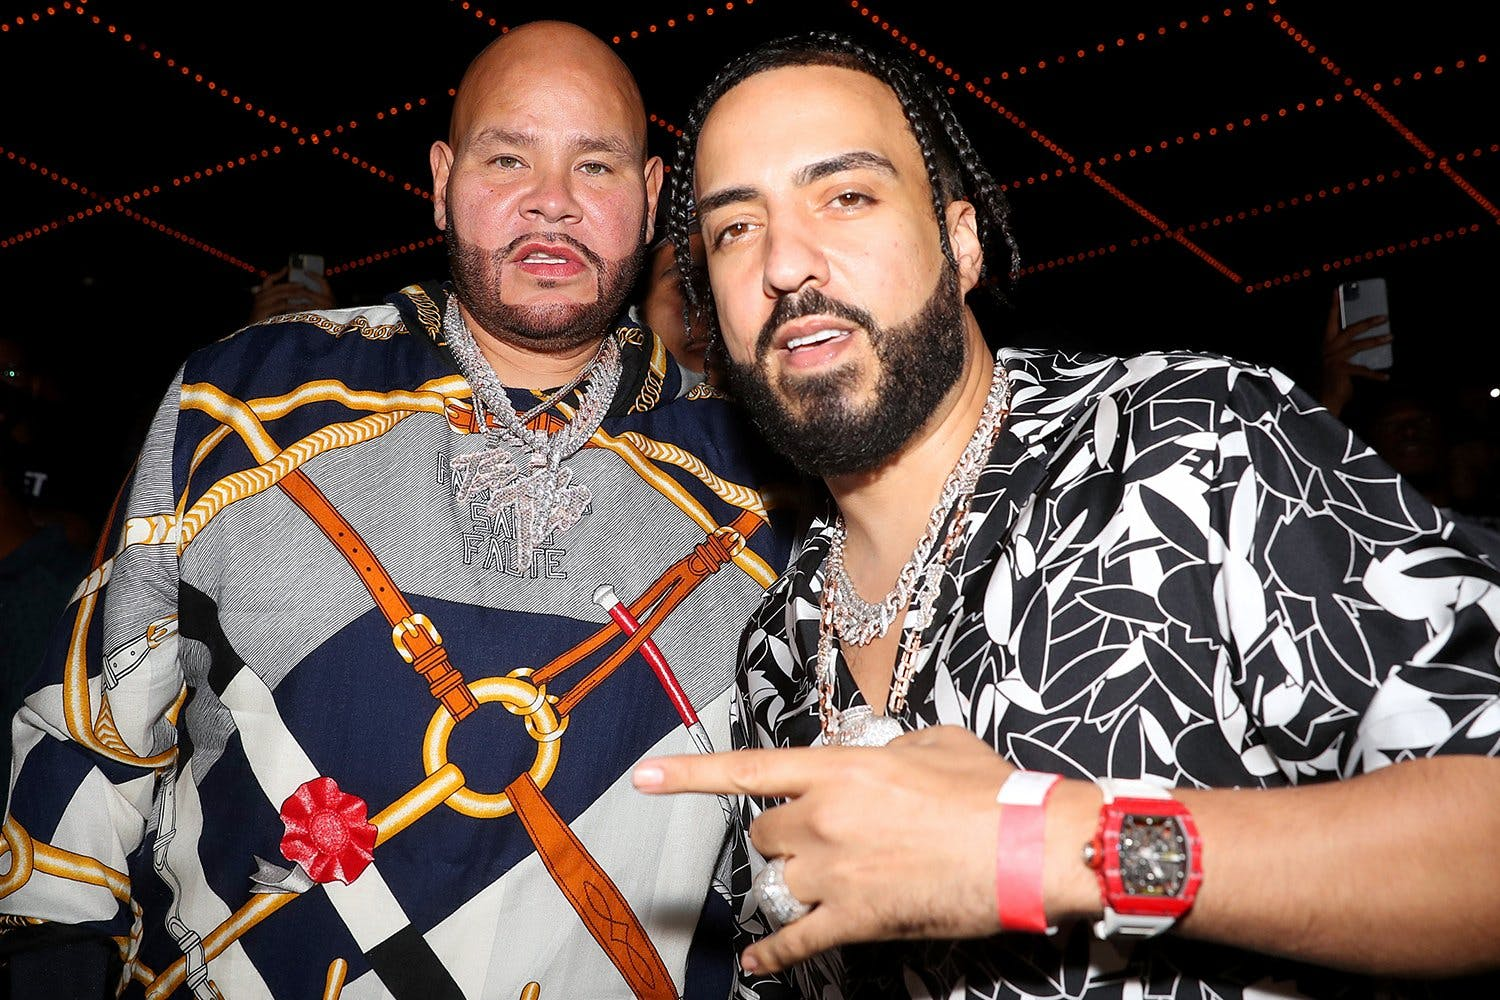 Fat Joe (L) and French Montana attend Verzuz: The Lox Vs Dipset at Madison Square Garden on August 03, 2021 in New York City.